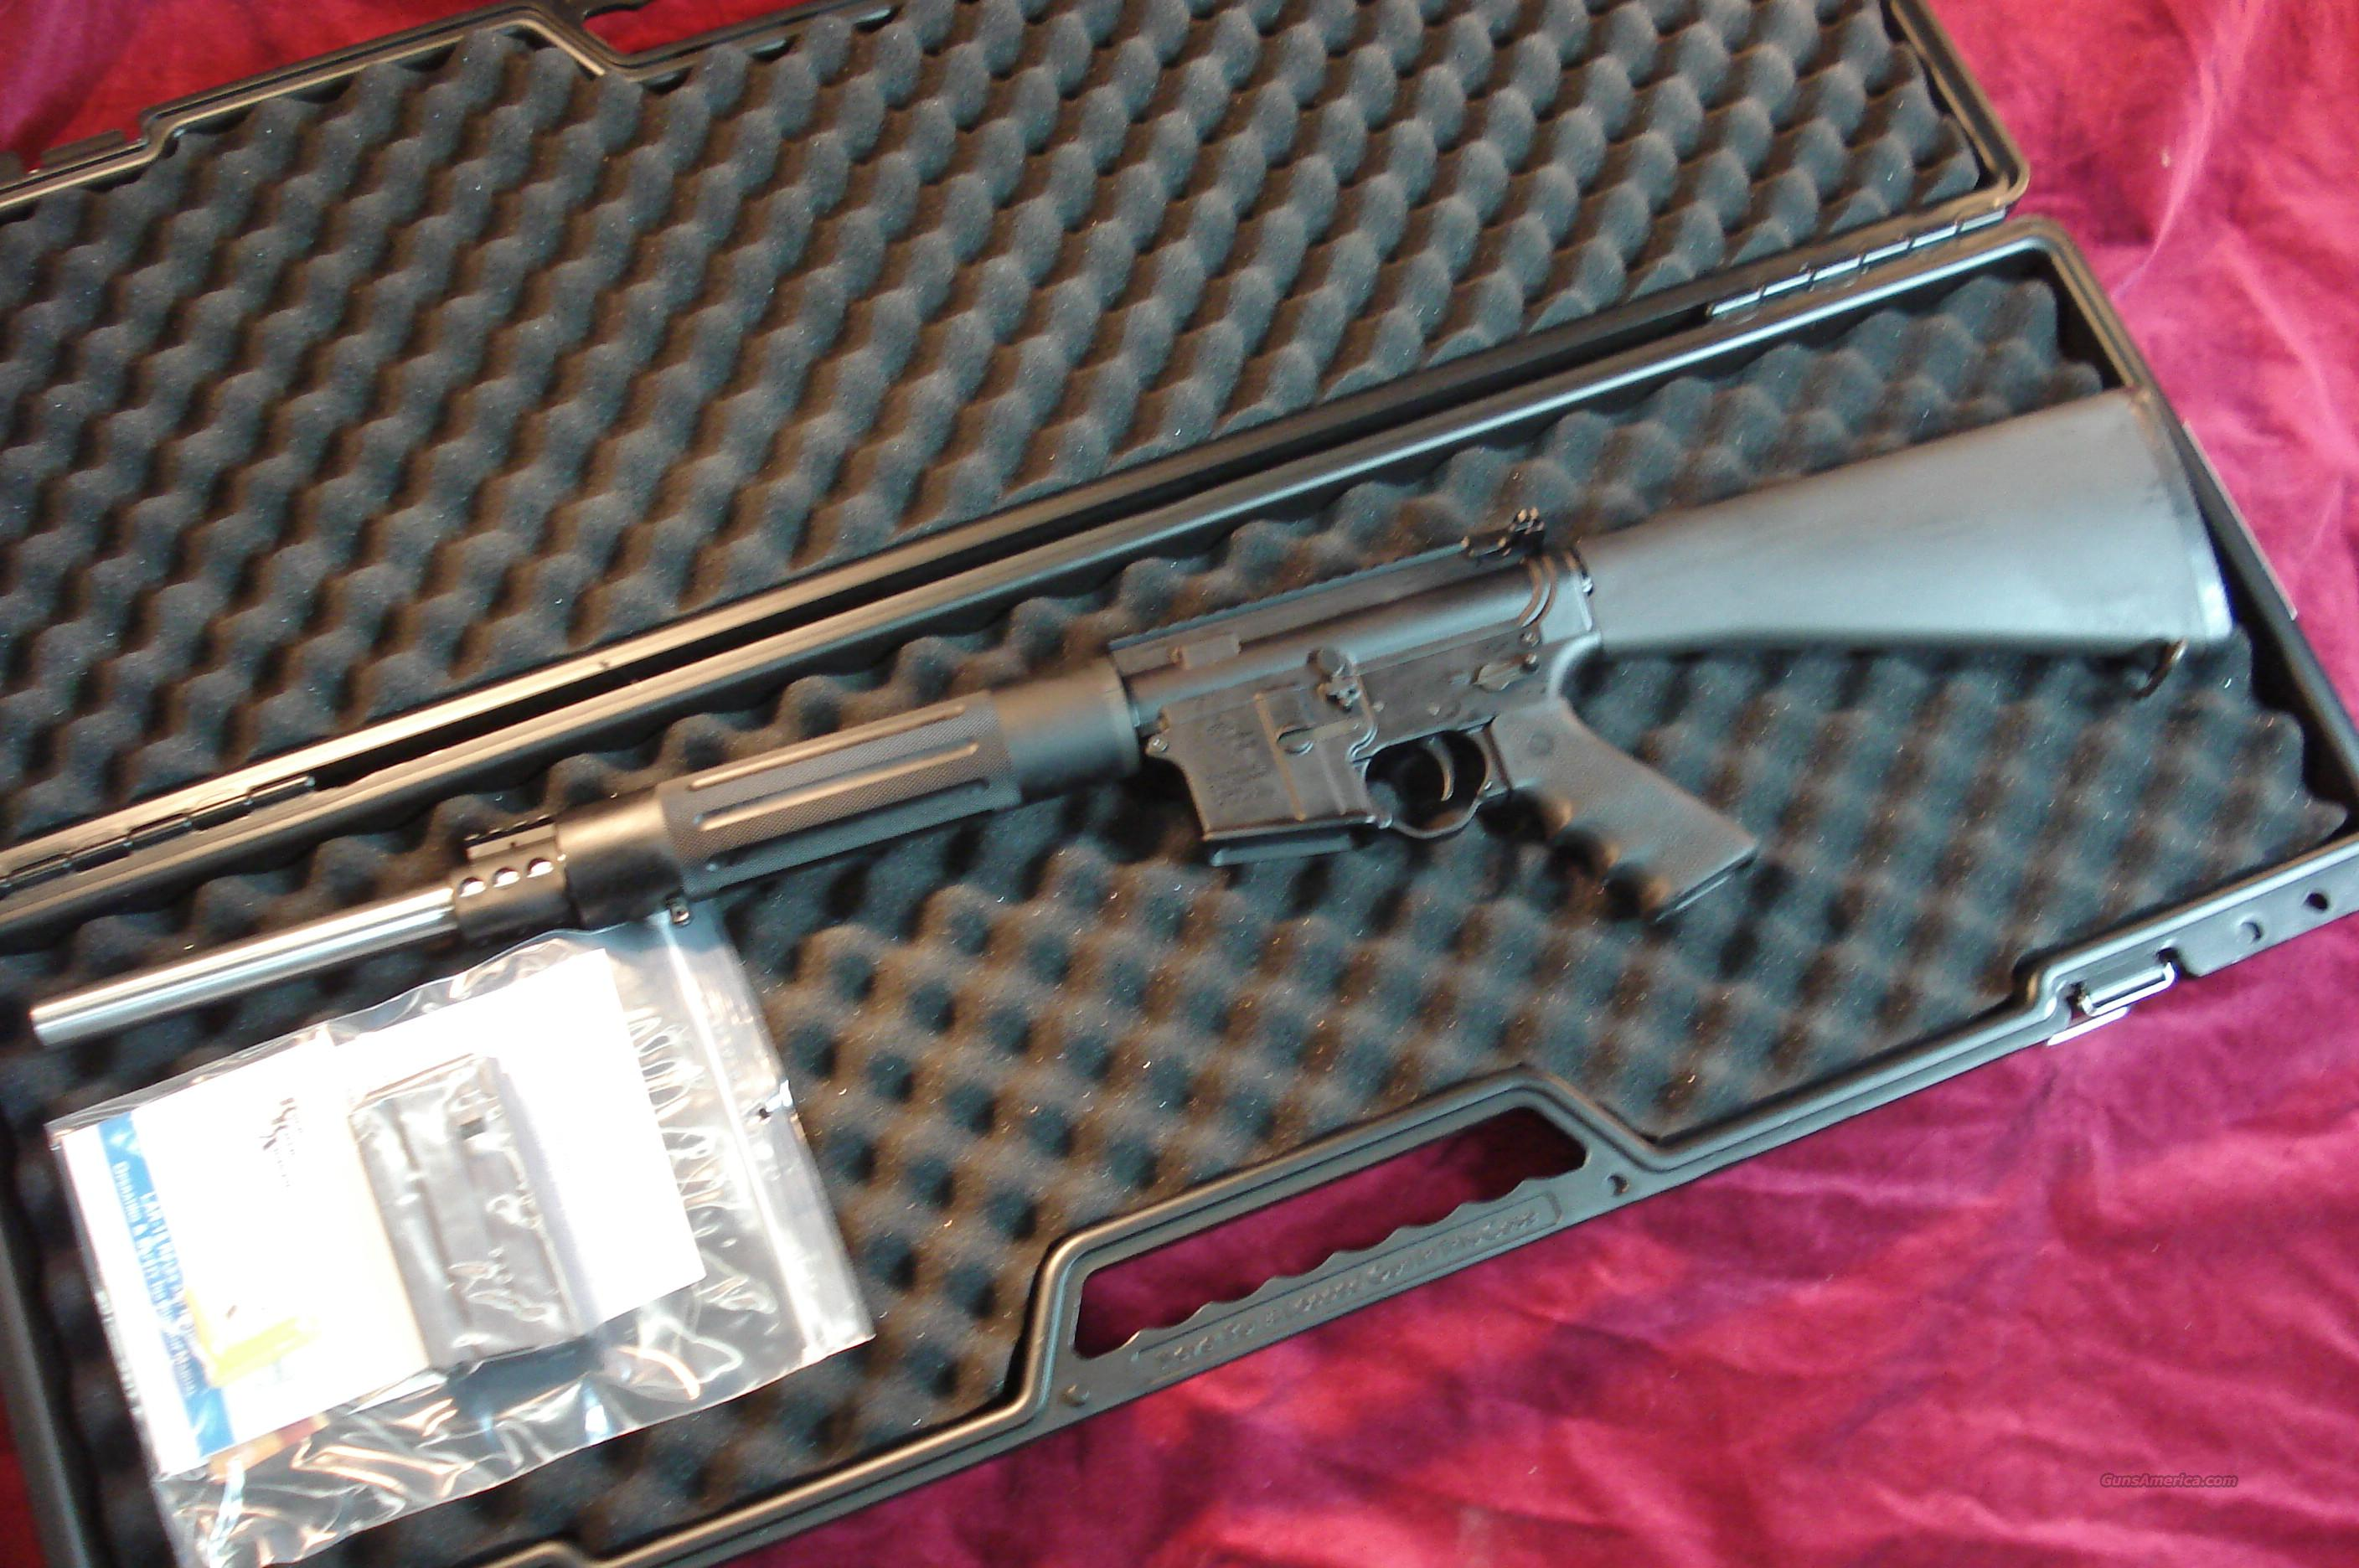 "ROCK RIVER ARMS LAR-15 VARMINT RIFLE 18"" STAINLESS HEAVY BARREL 223/5.56 CAL NEW  Guns > Rifles > Rock River Arms Rifles"